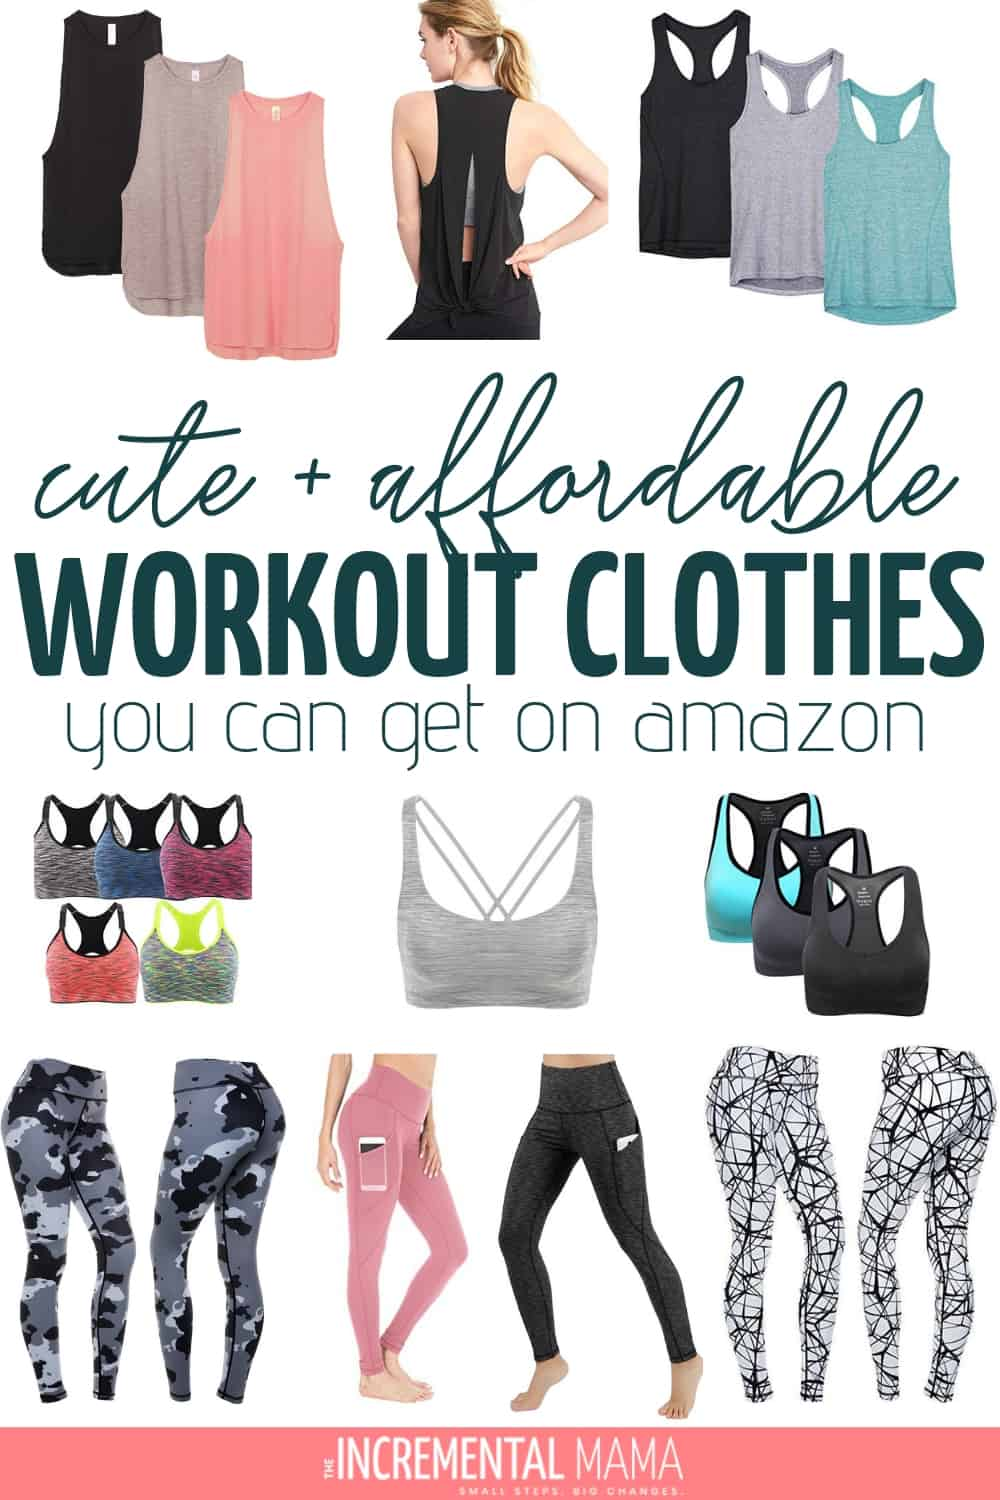 cute workout clothes on amazon